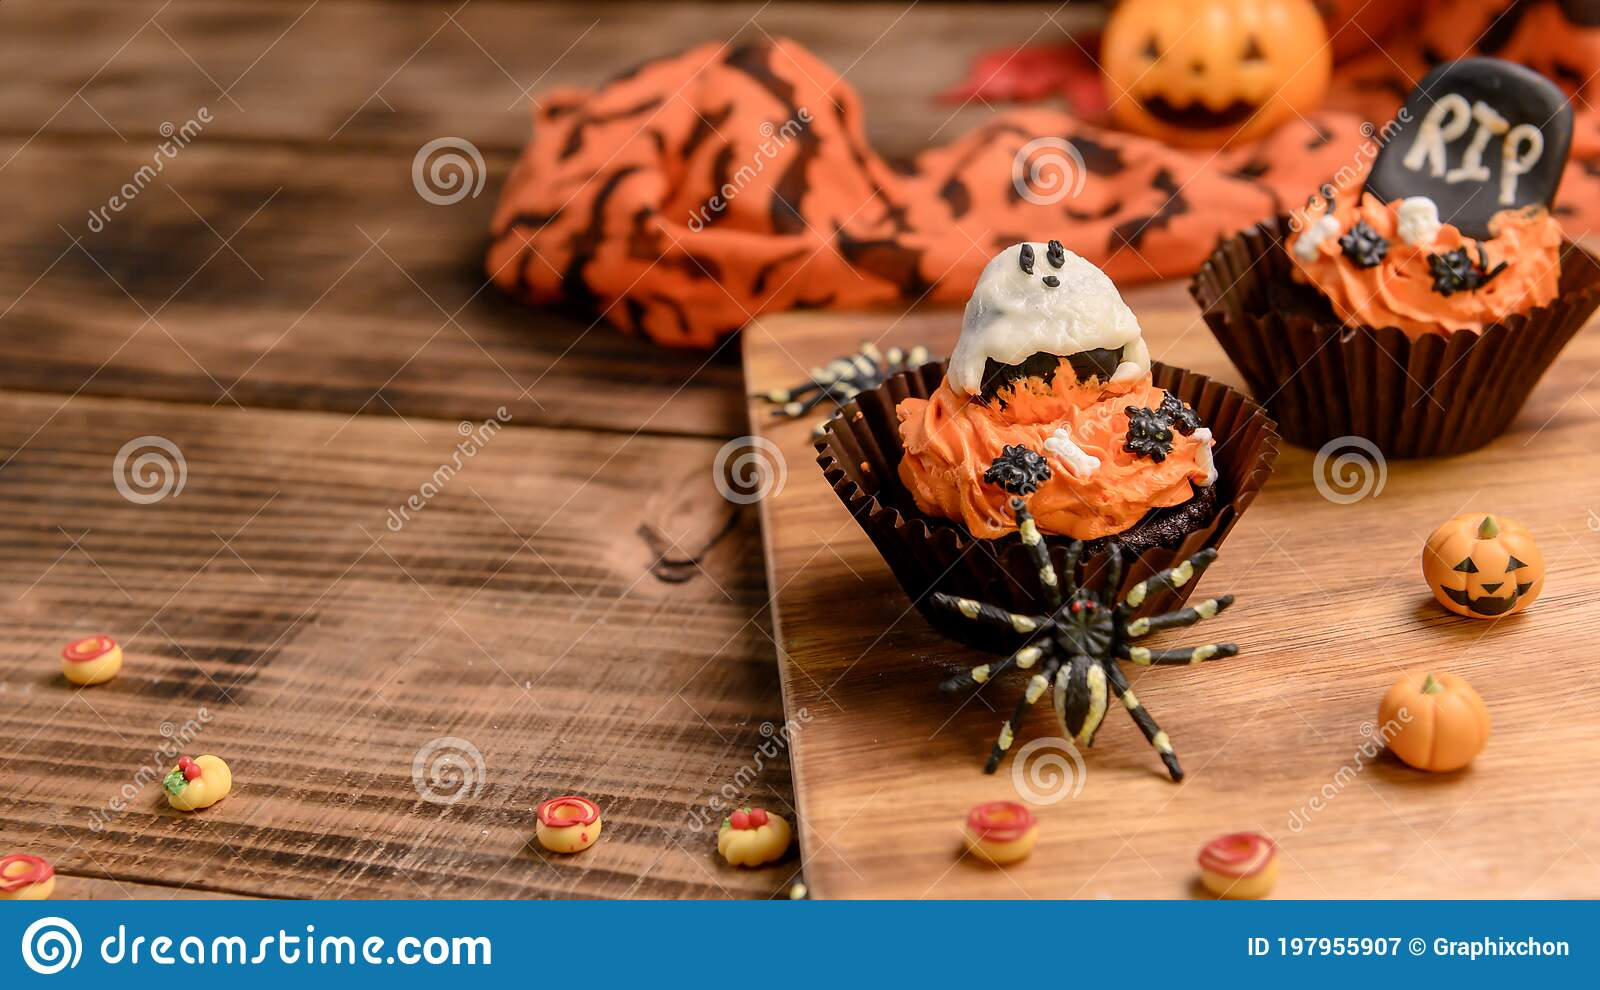 Cooking Delicious Homemade Cake And Decorate Cupcake For Halloween Festive Sweet Dessert And Decoration For Party Stock Image Image Of Chef Celebration 197955907